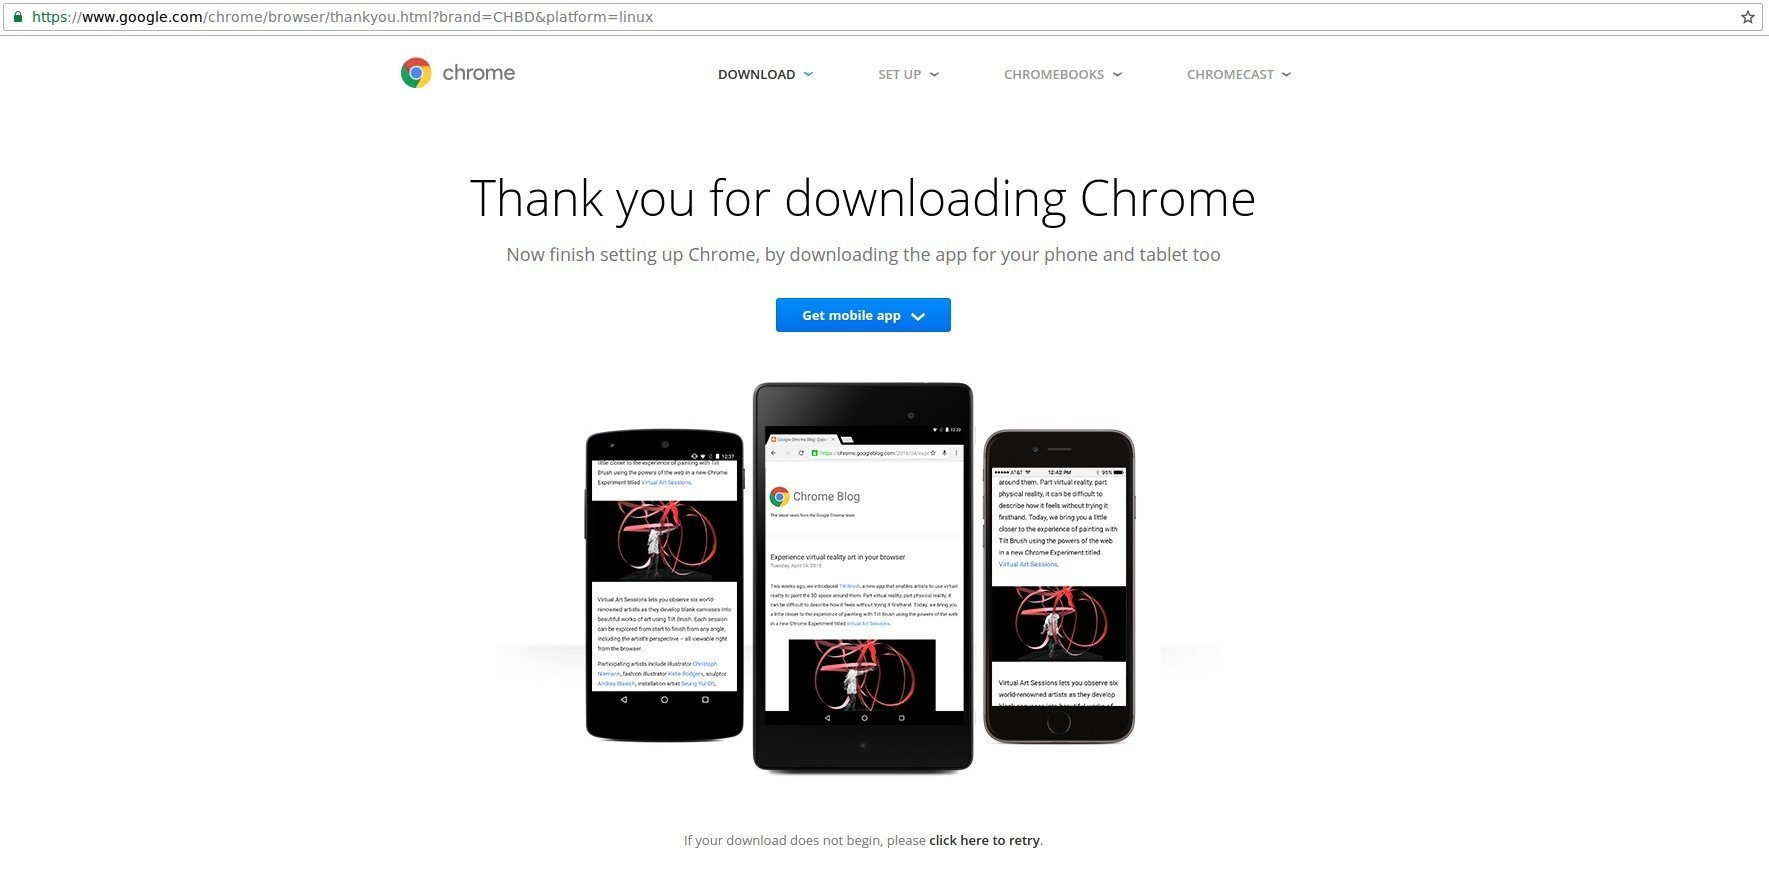 Chrome Offline Installer for PC, Mac, Android + Linux